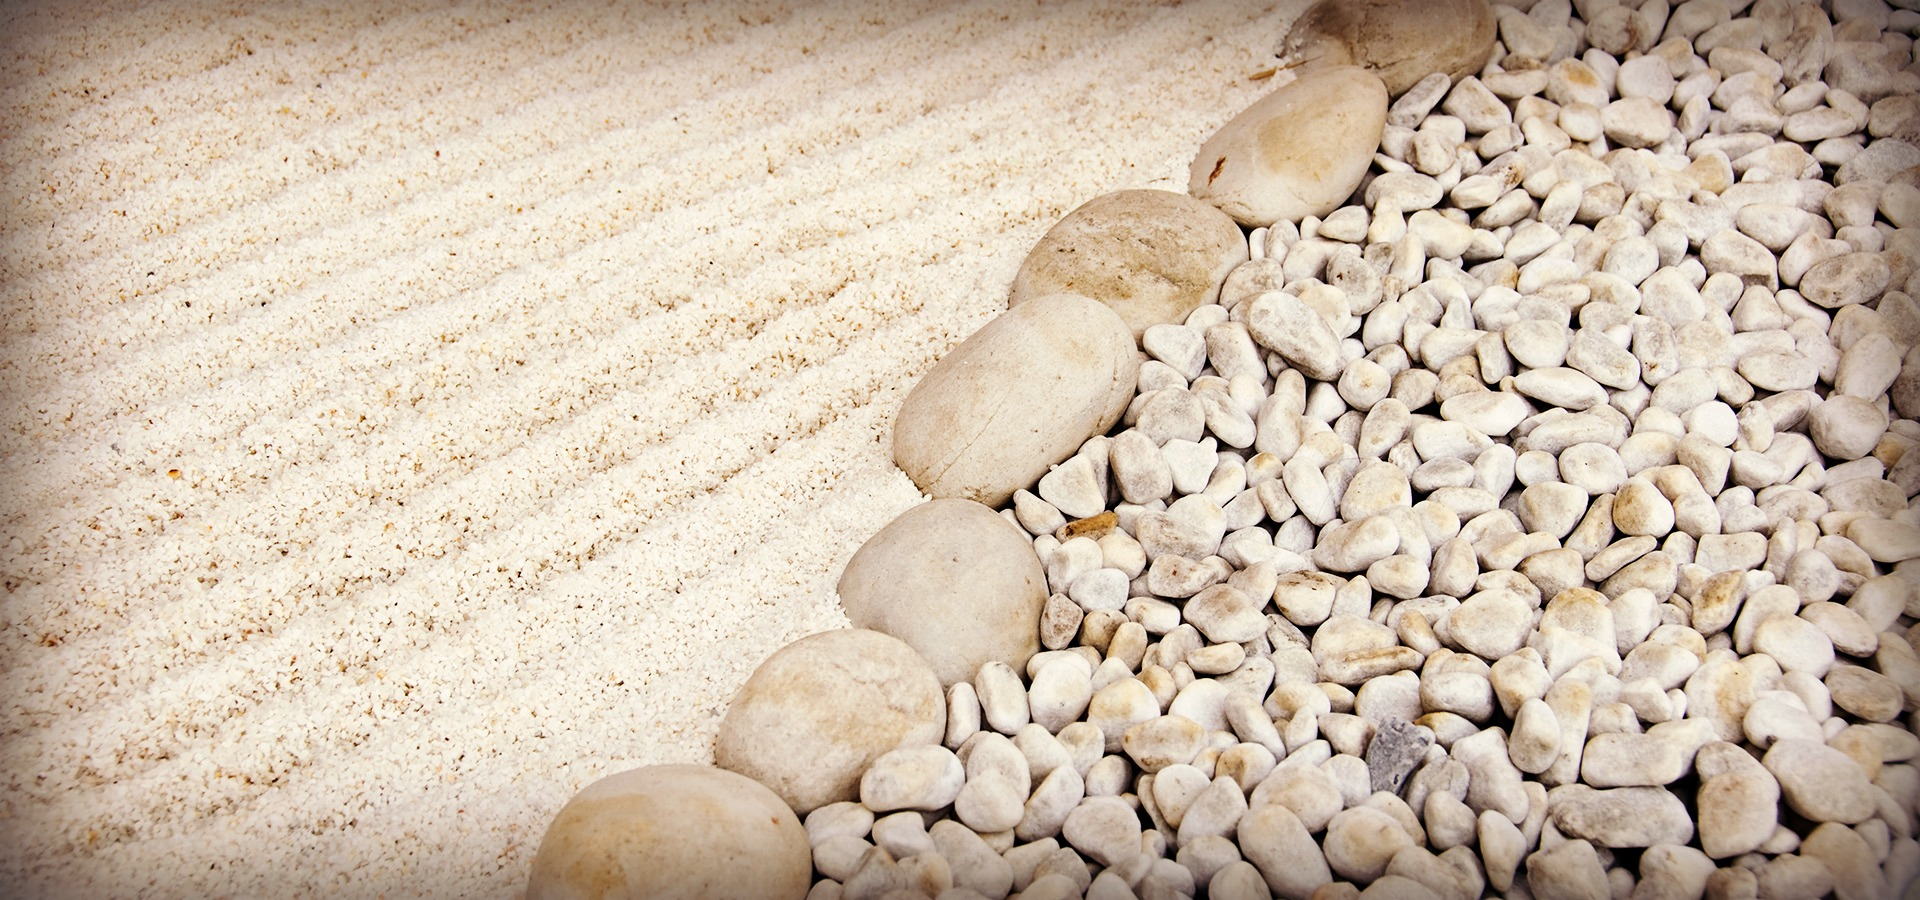 Rocks, Pebbles, and Sand